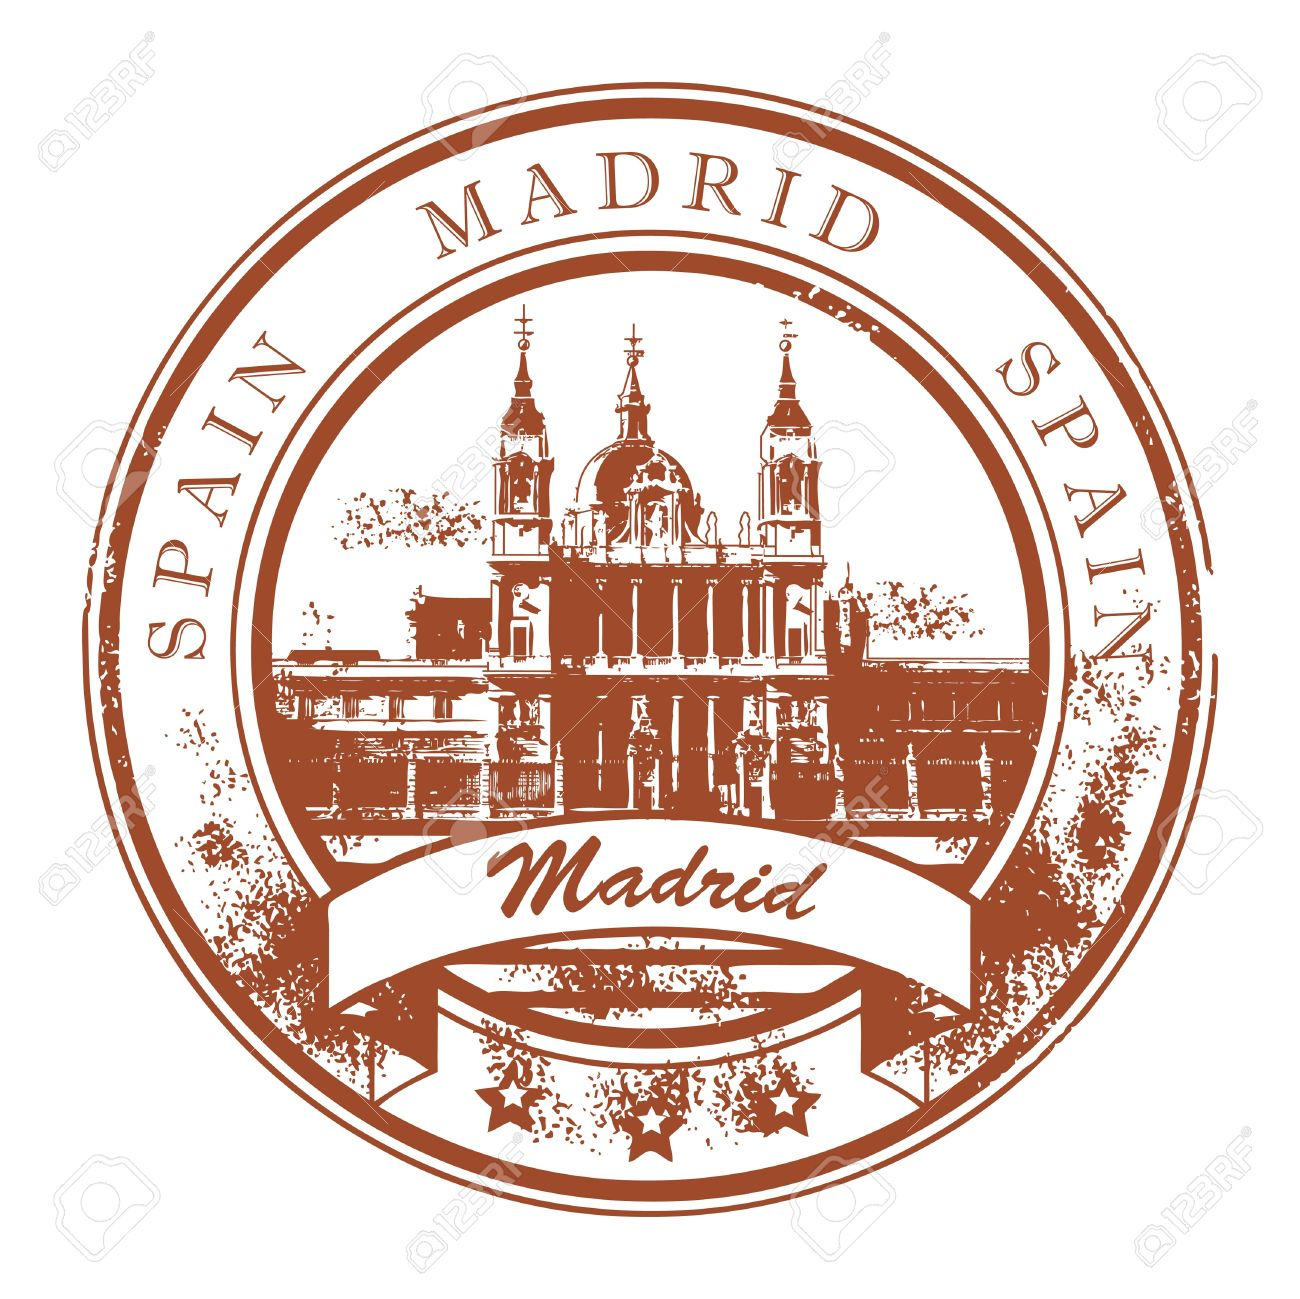 Grunge Rubber Stamp With The Name Of Madrid Capital Spain Written Inside